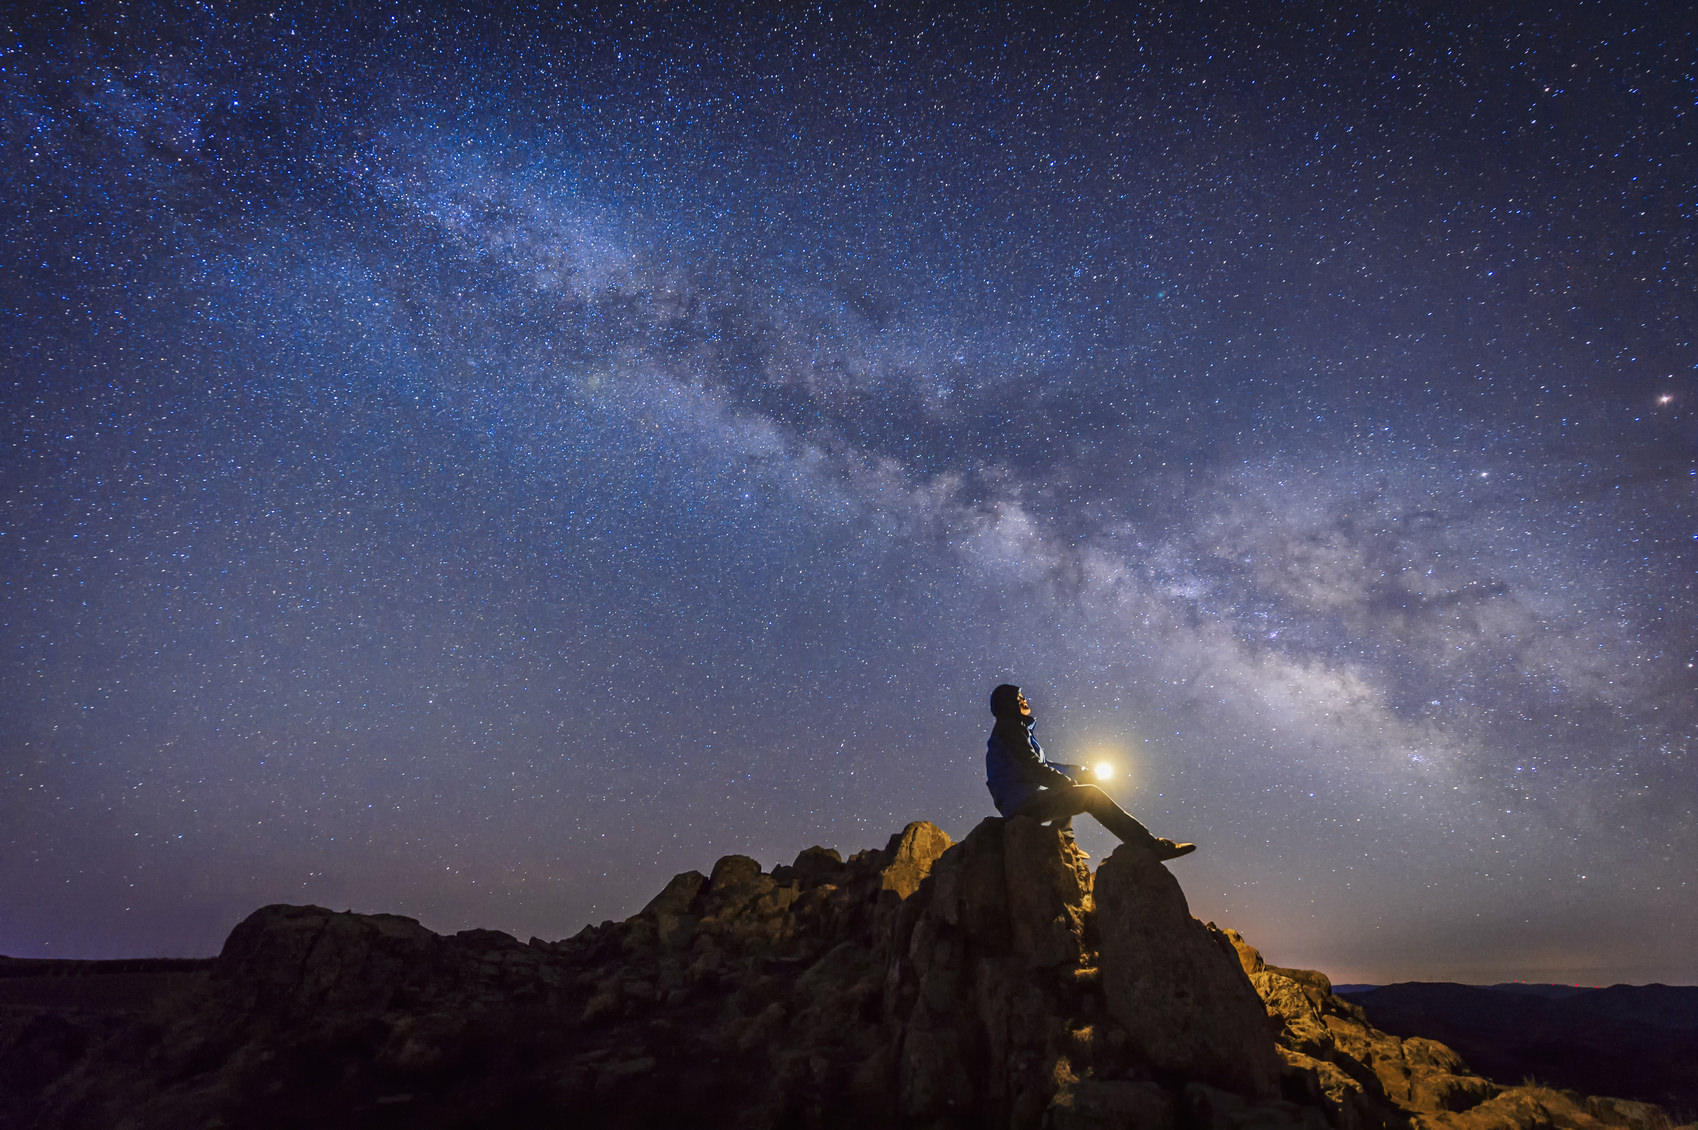 Astrophotography Gear Guide: Essential Equipment